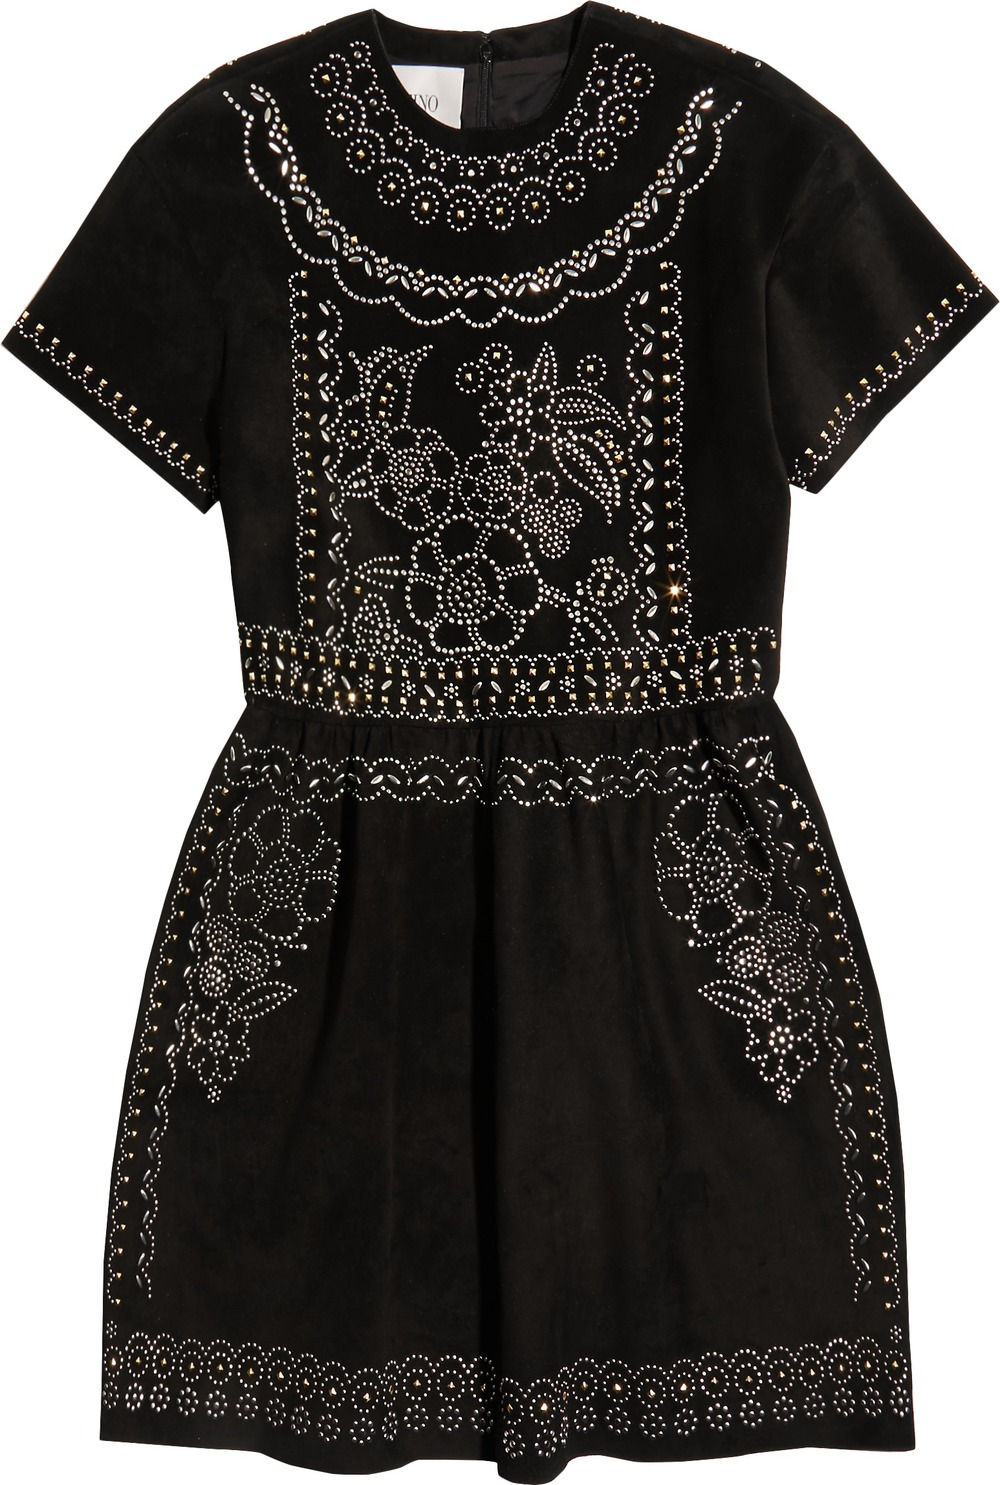 508504_Valentino_Studded suede mini dress_-ú1562_THEOUTNET.COM.jpg